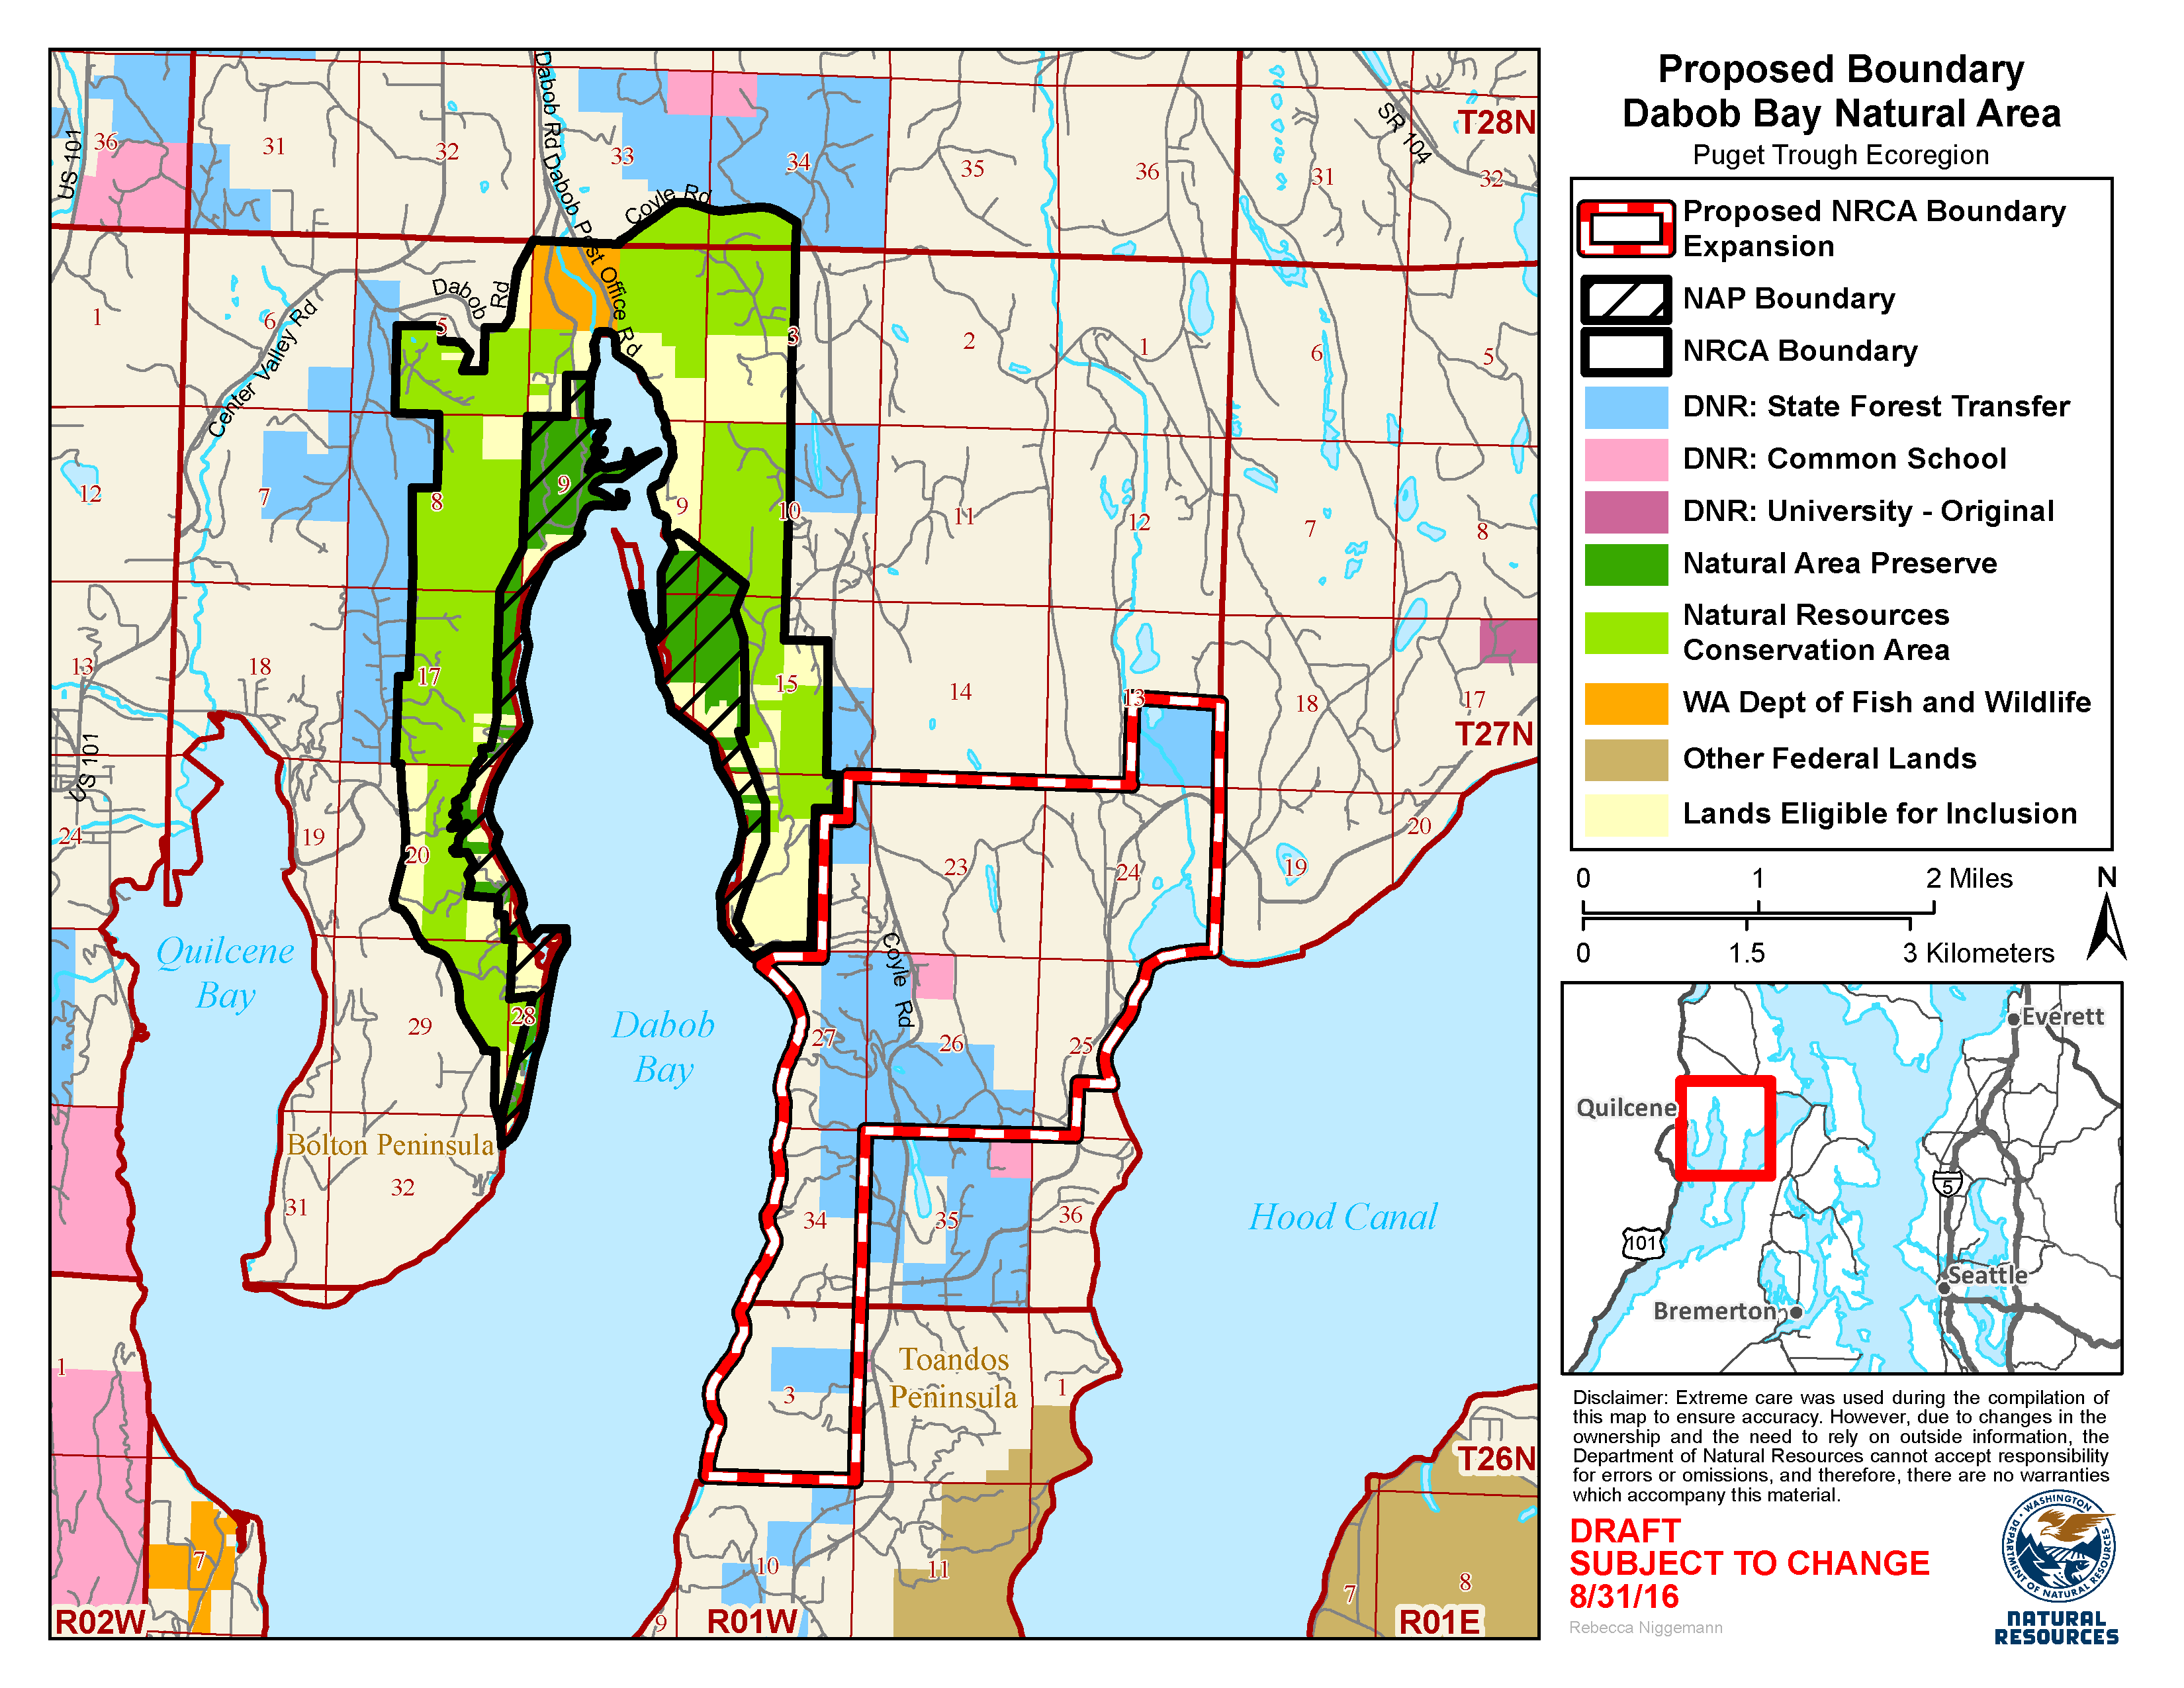 Map of the proposed boundary expansion of the Dabob Bay Natural Resource Conservation Area